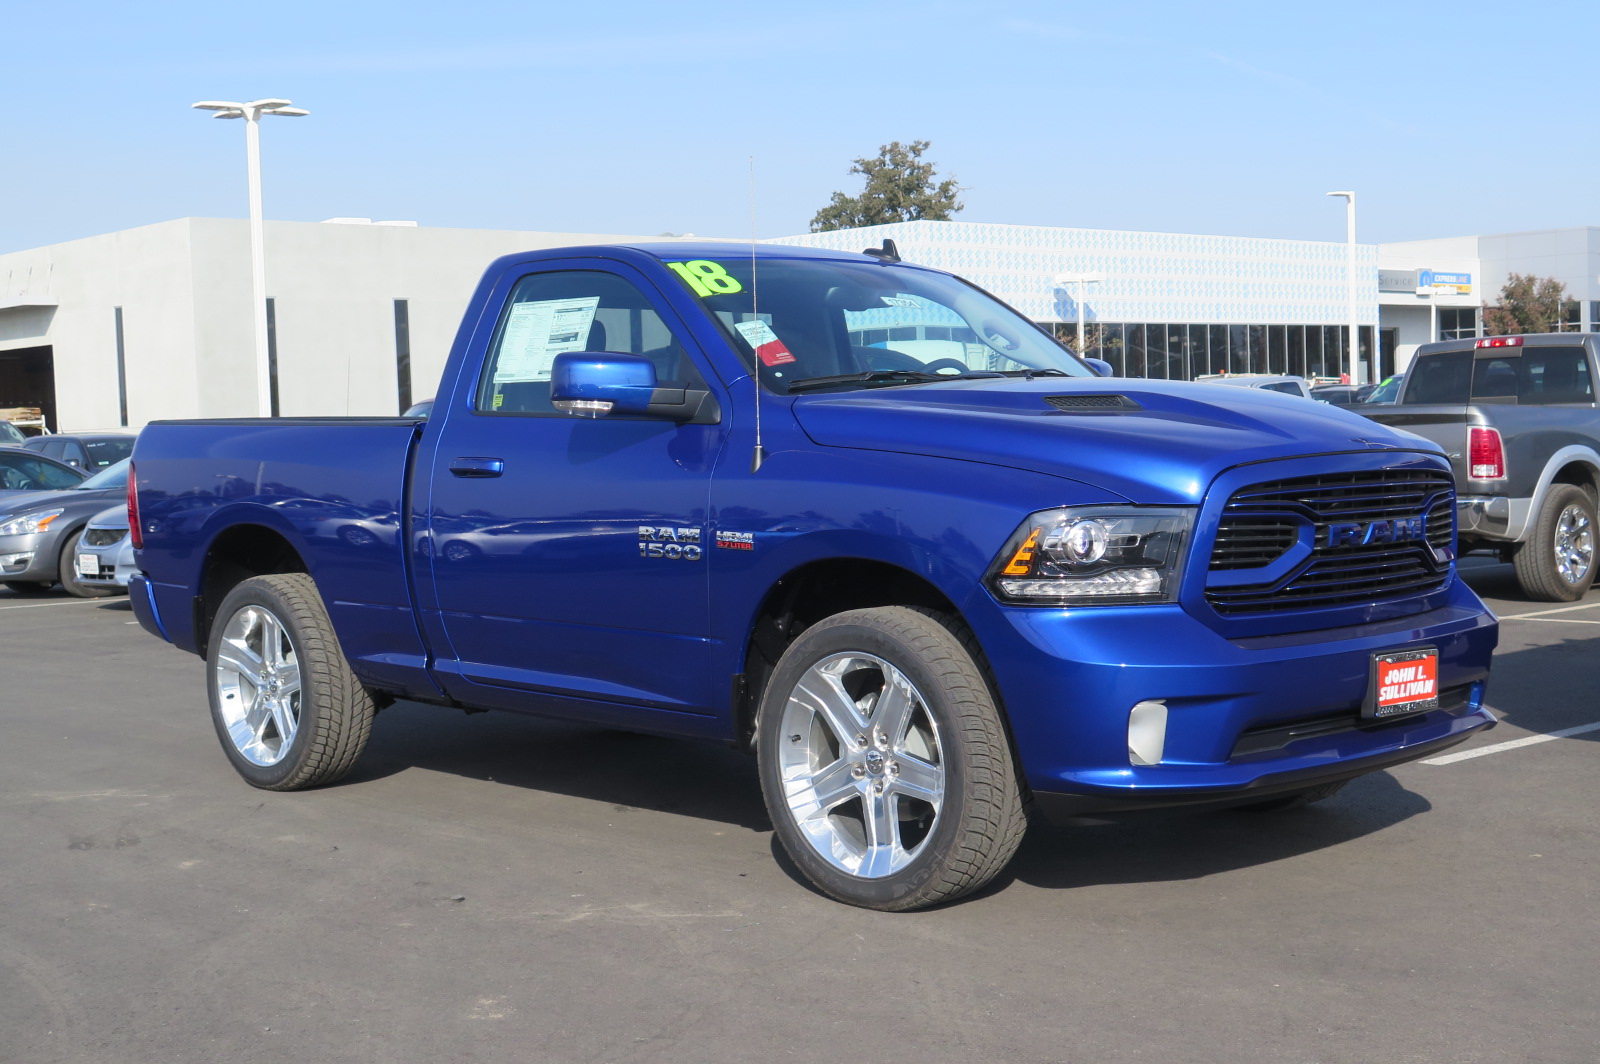 New 2018 Ram 1500 2d Standard Cab In Yuba City 00017354